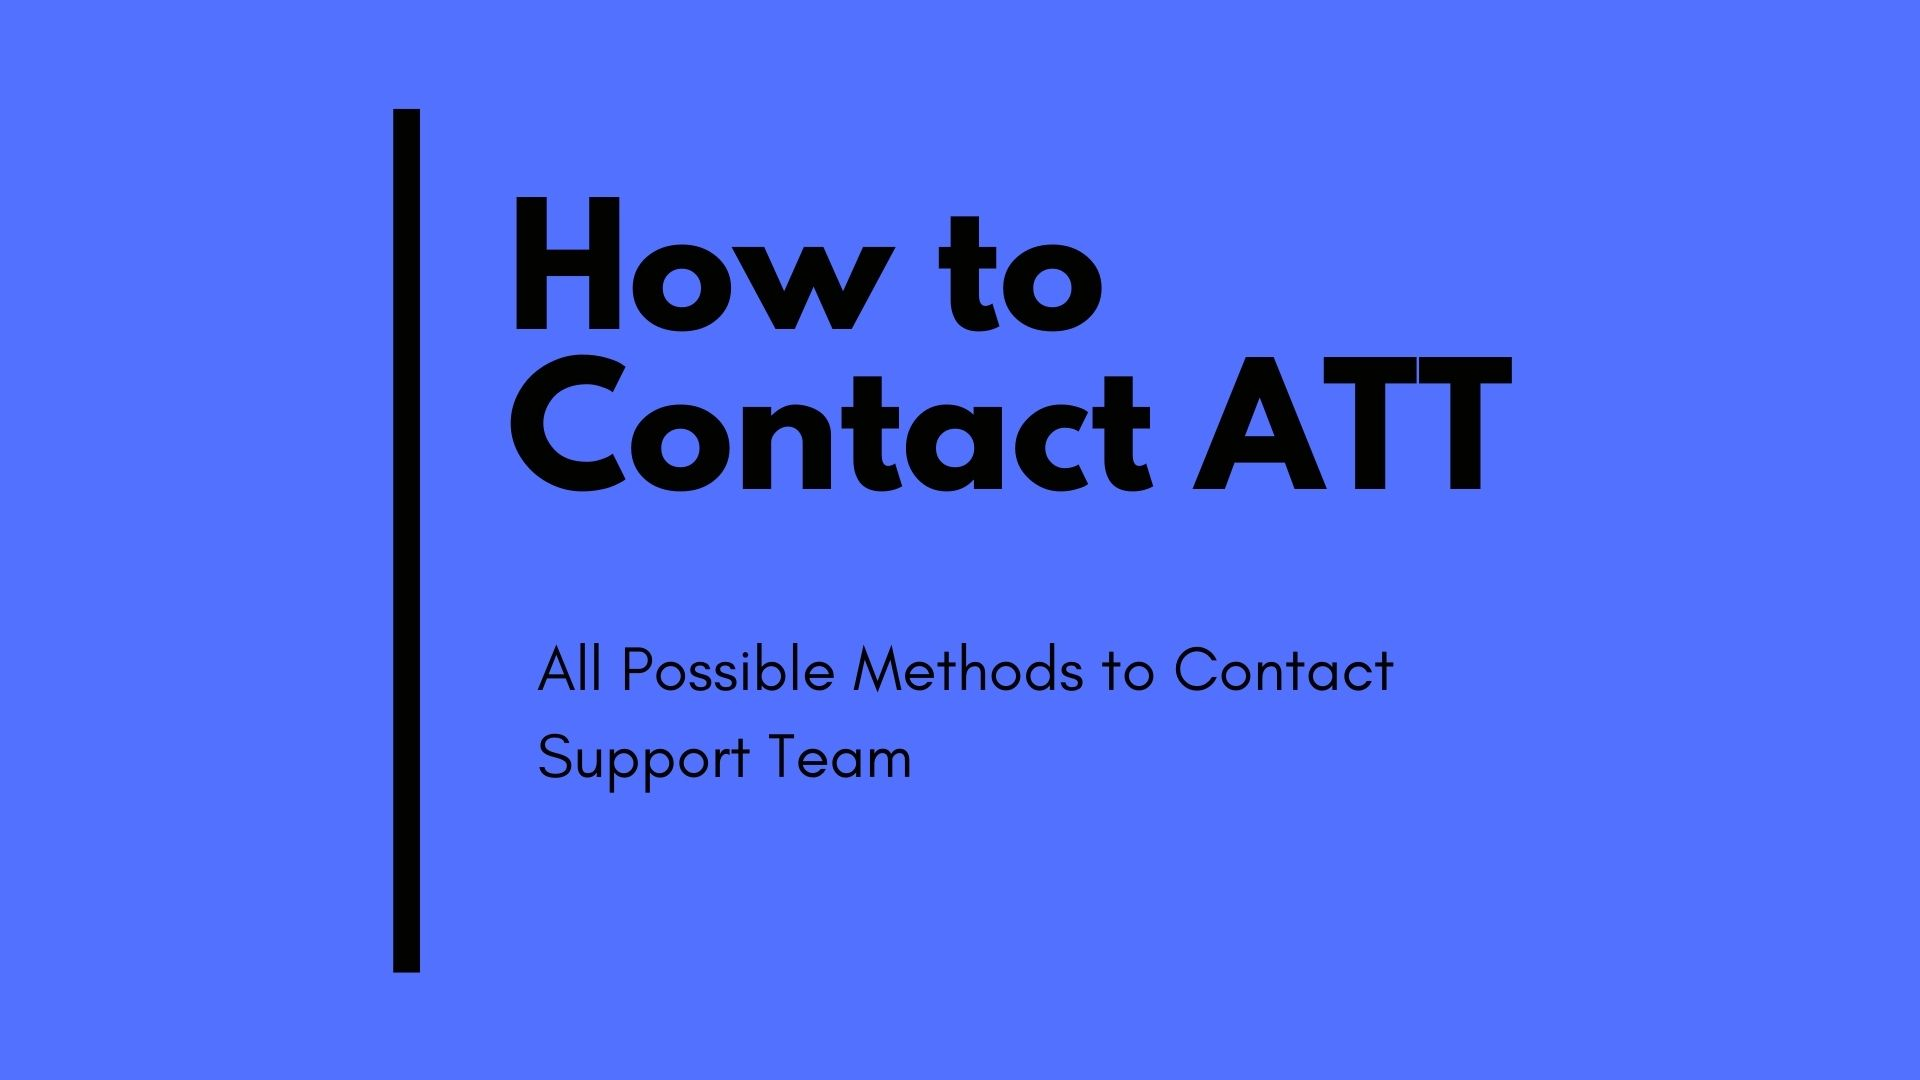 how to contact att support